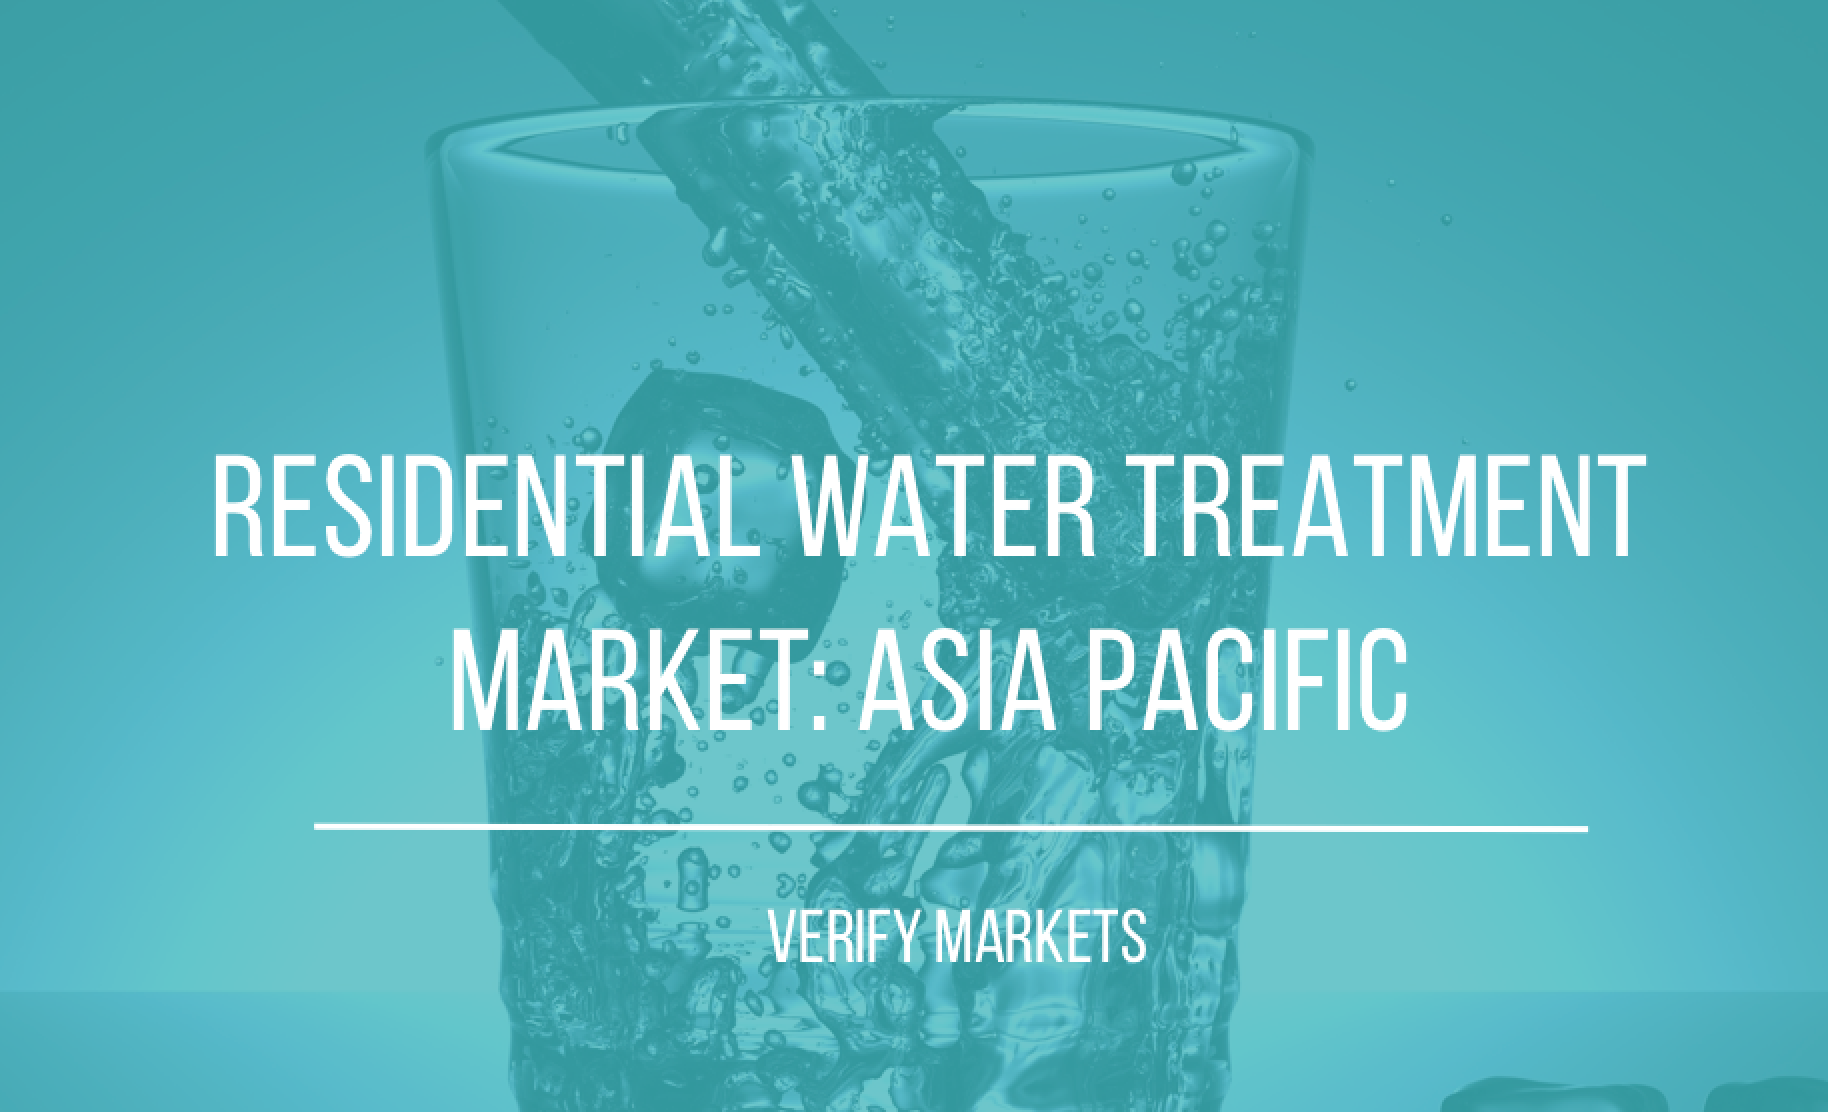 2017 RESIDENTIAL WATER TREATMENT MARKET: ASIA PACIFIC